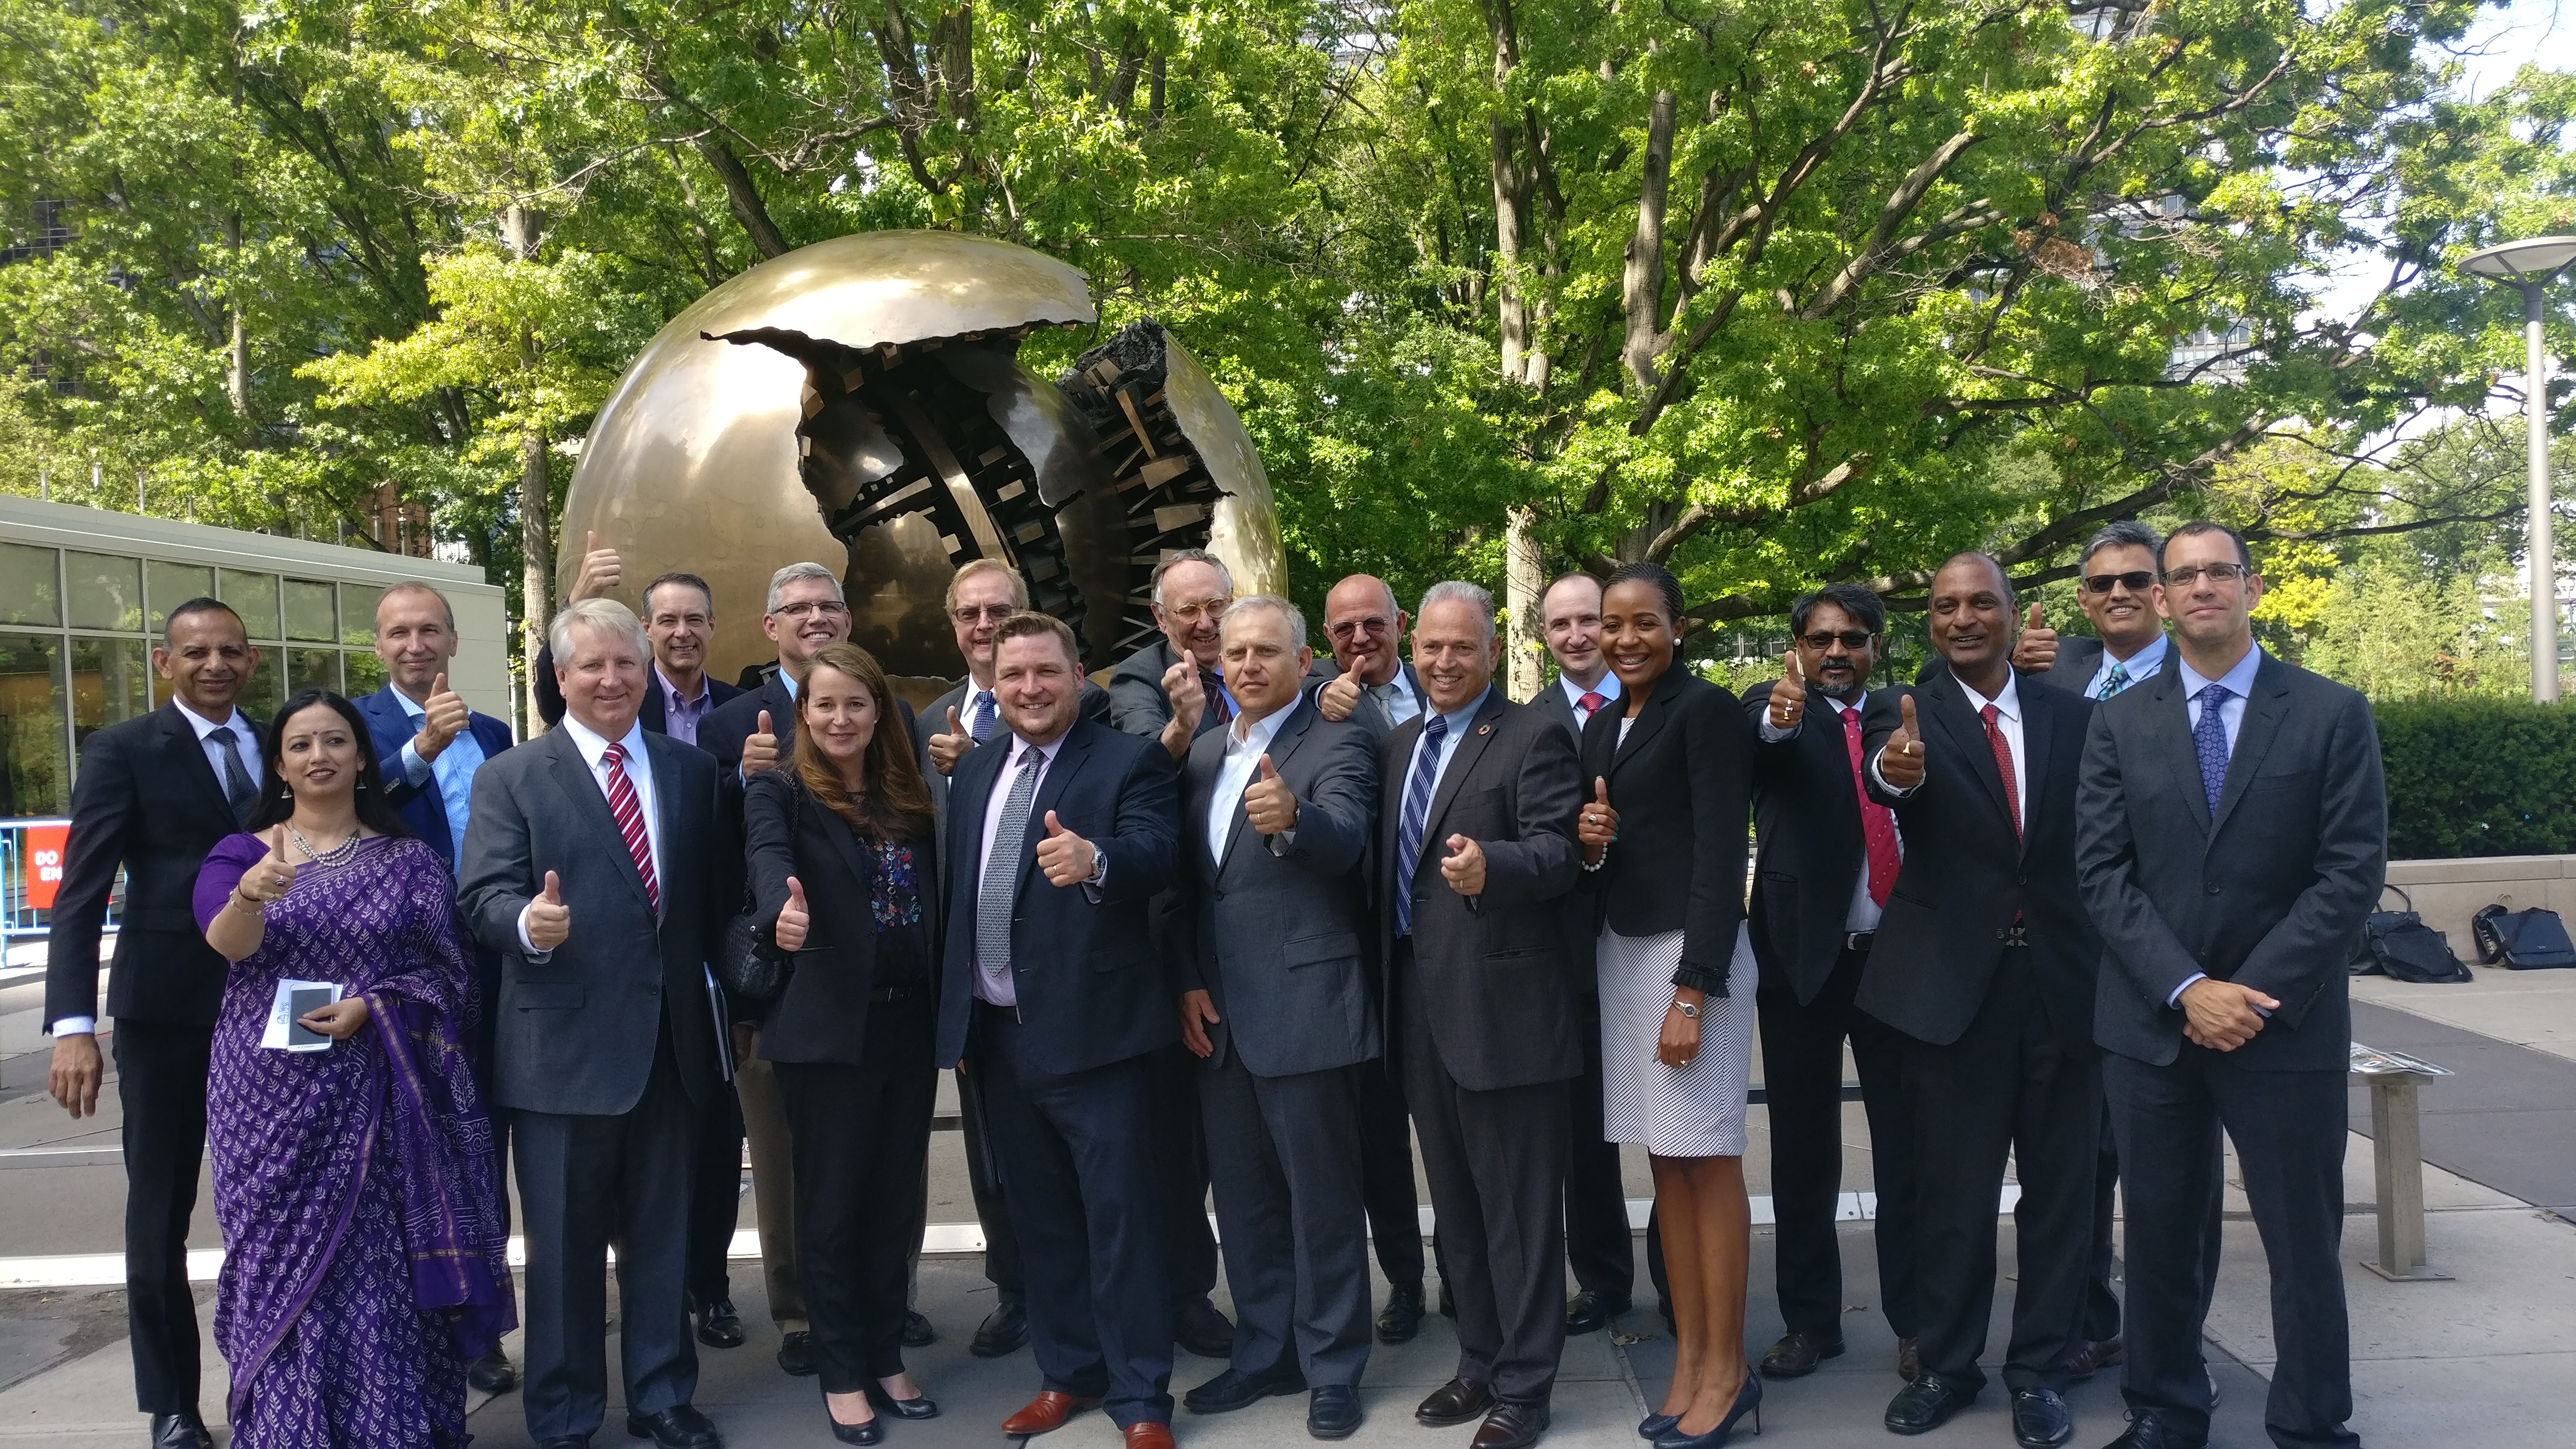 Geospatial industry leaders at the UN Headquarters in New York, after the announcement of the launch of the WGIC.